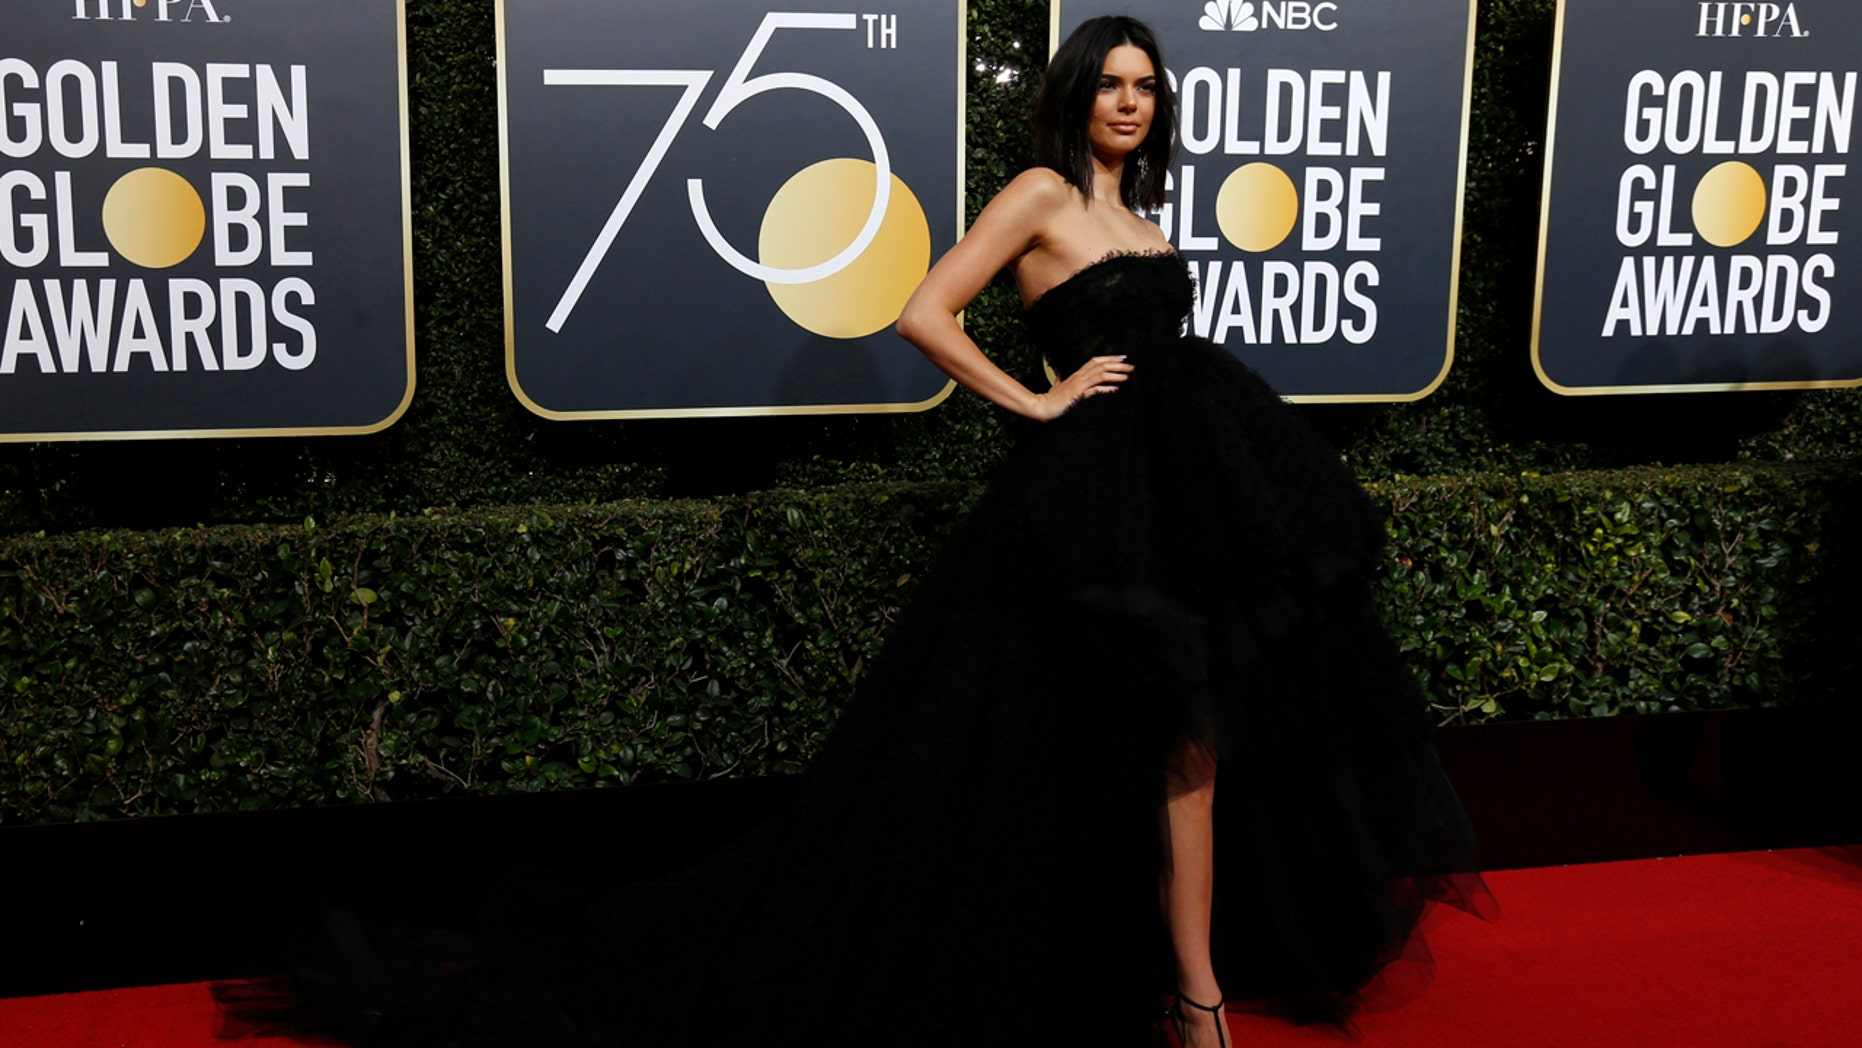 The model posed on the Golden Globes red carpet in a strapless high-low ball gown paired with black Mary Jane heels.